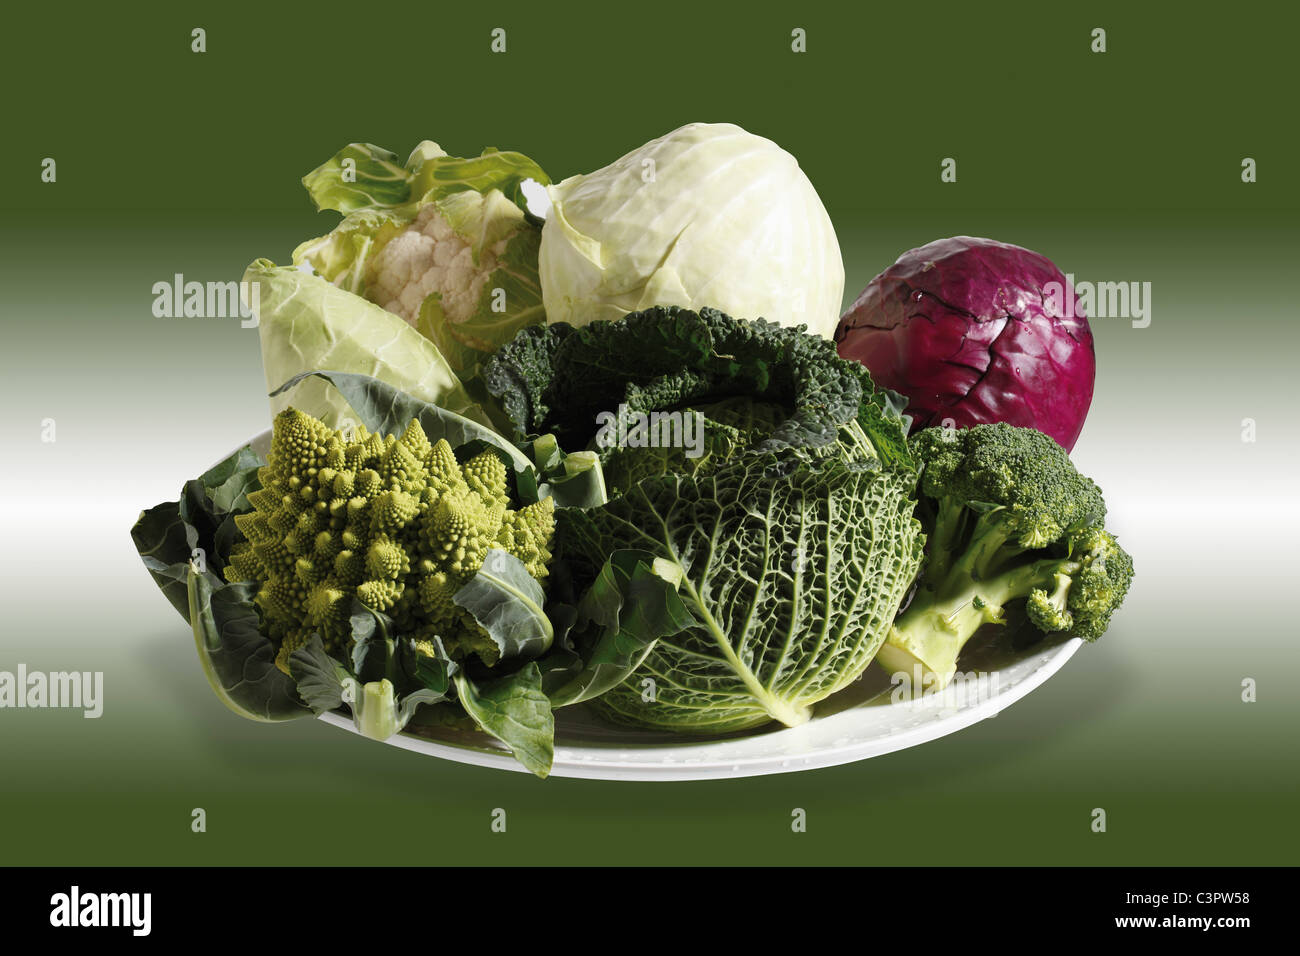 Variety of cabbage in plate against coloured background - Stock Image